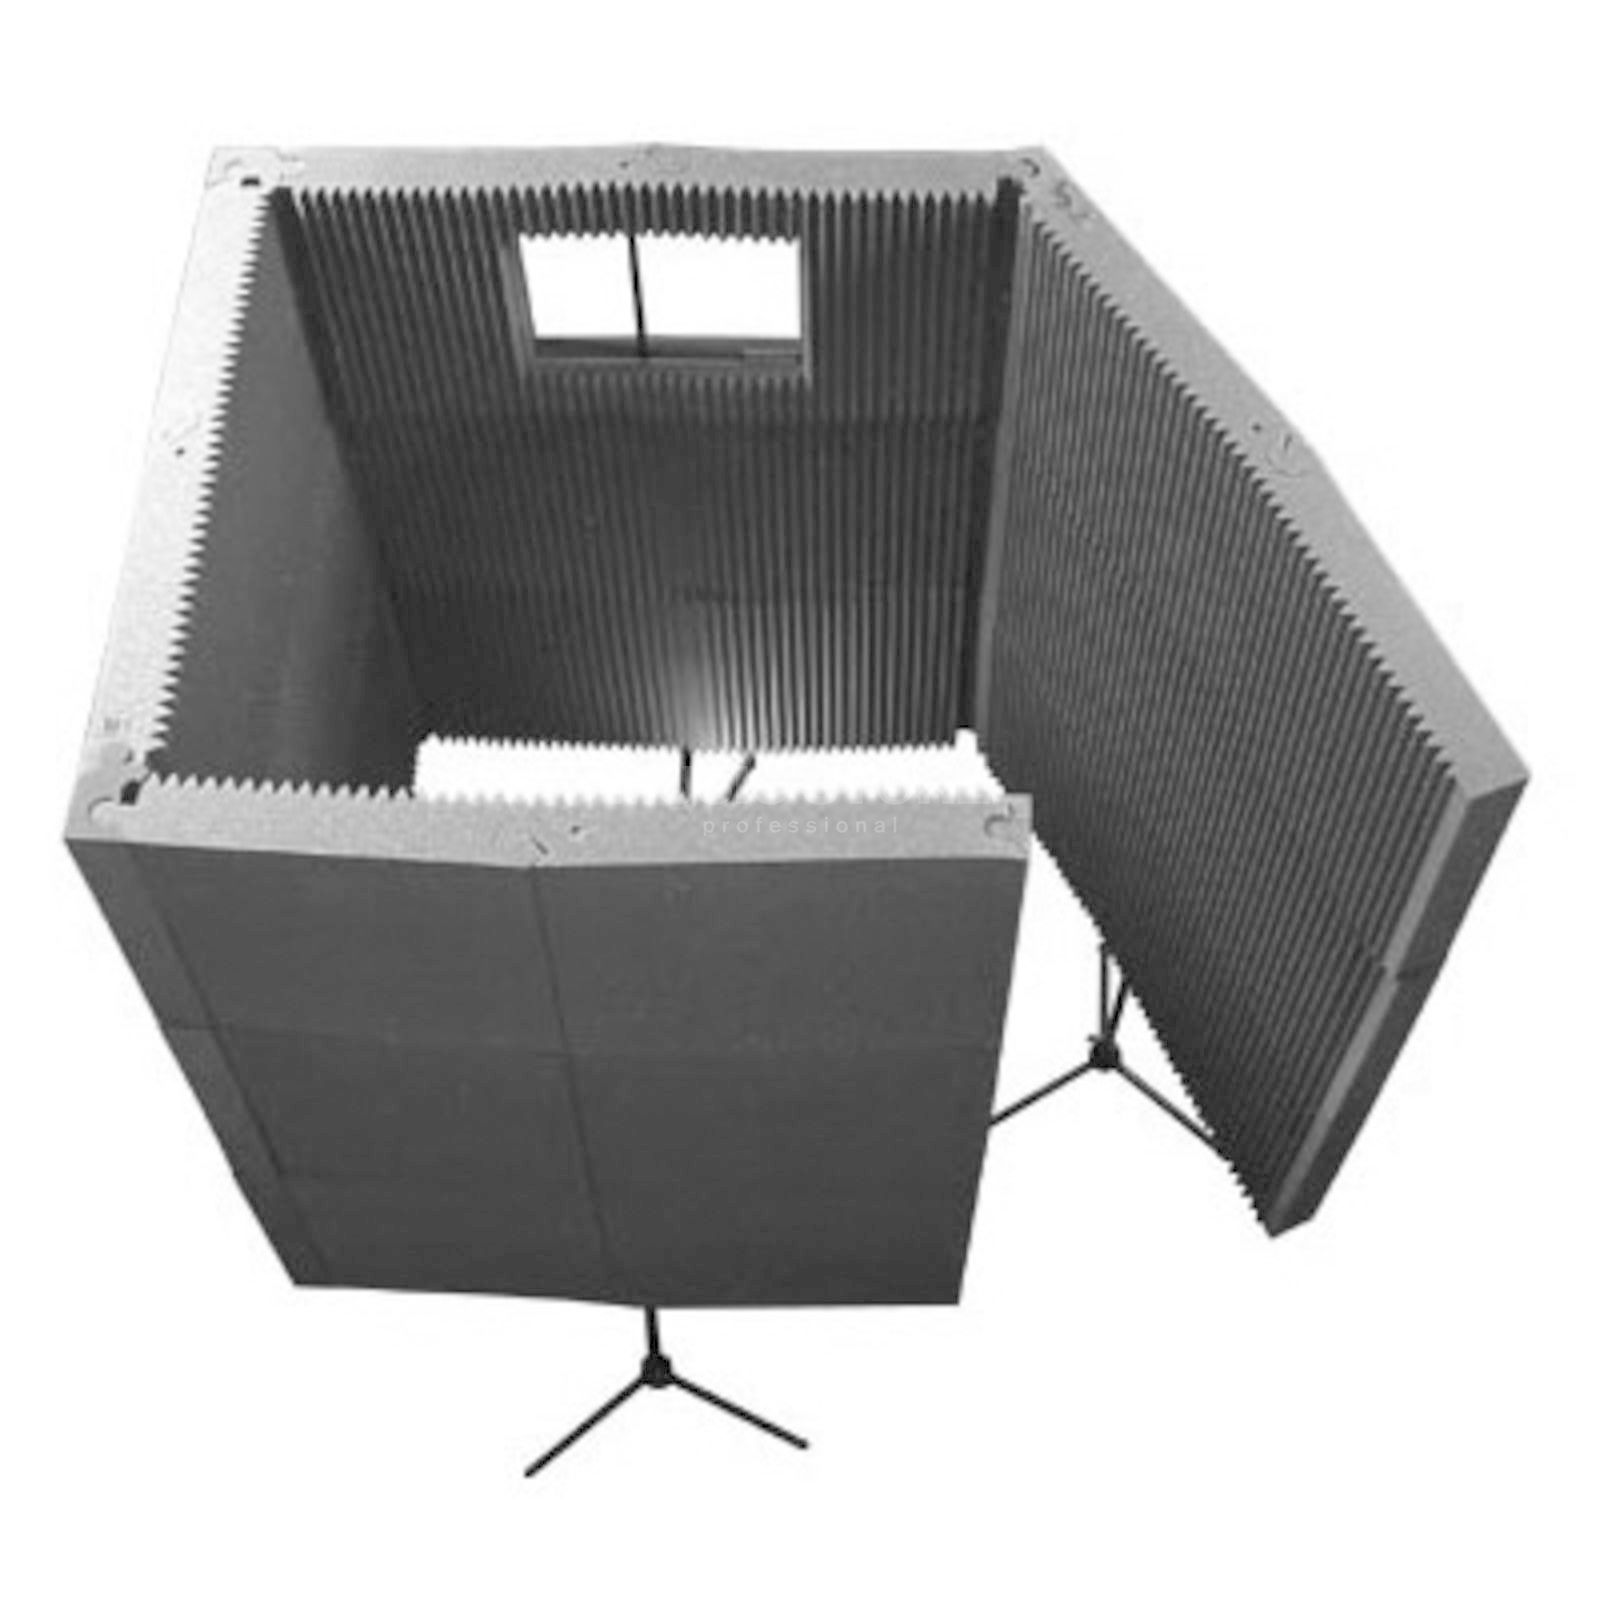 Auralex Max - Wall 1141VB Kit/ Gray 11x - Panel/1x - Window/4x - Stand Product Image